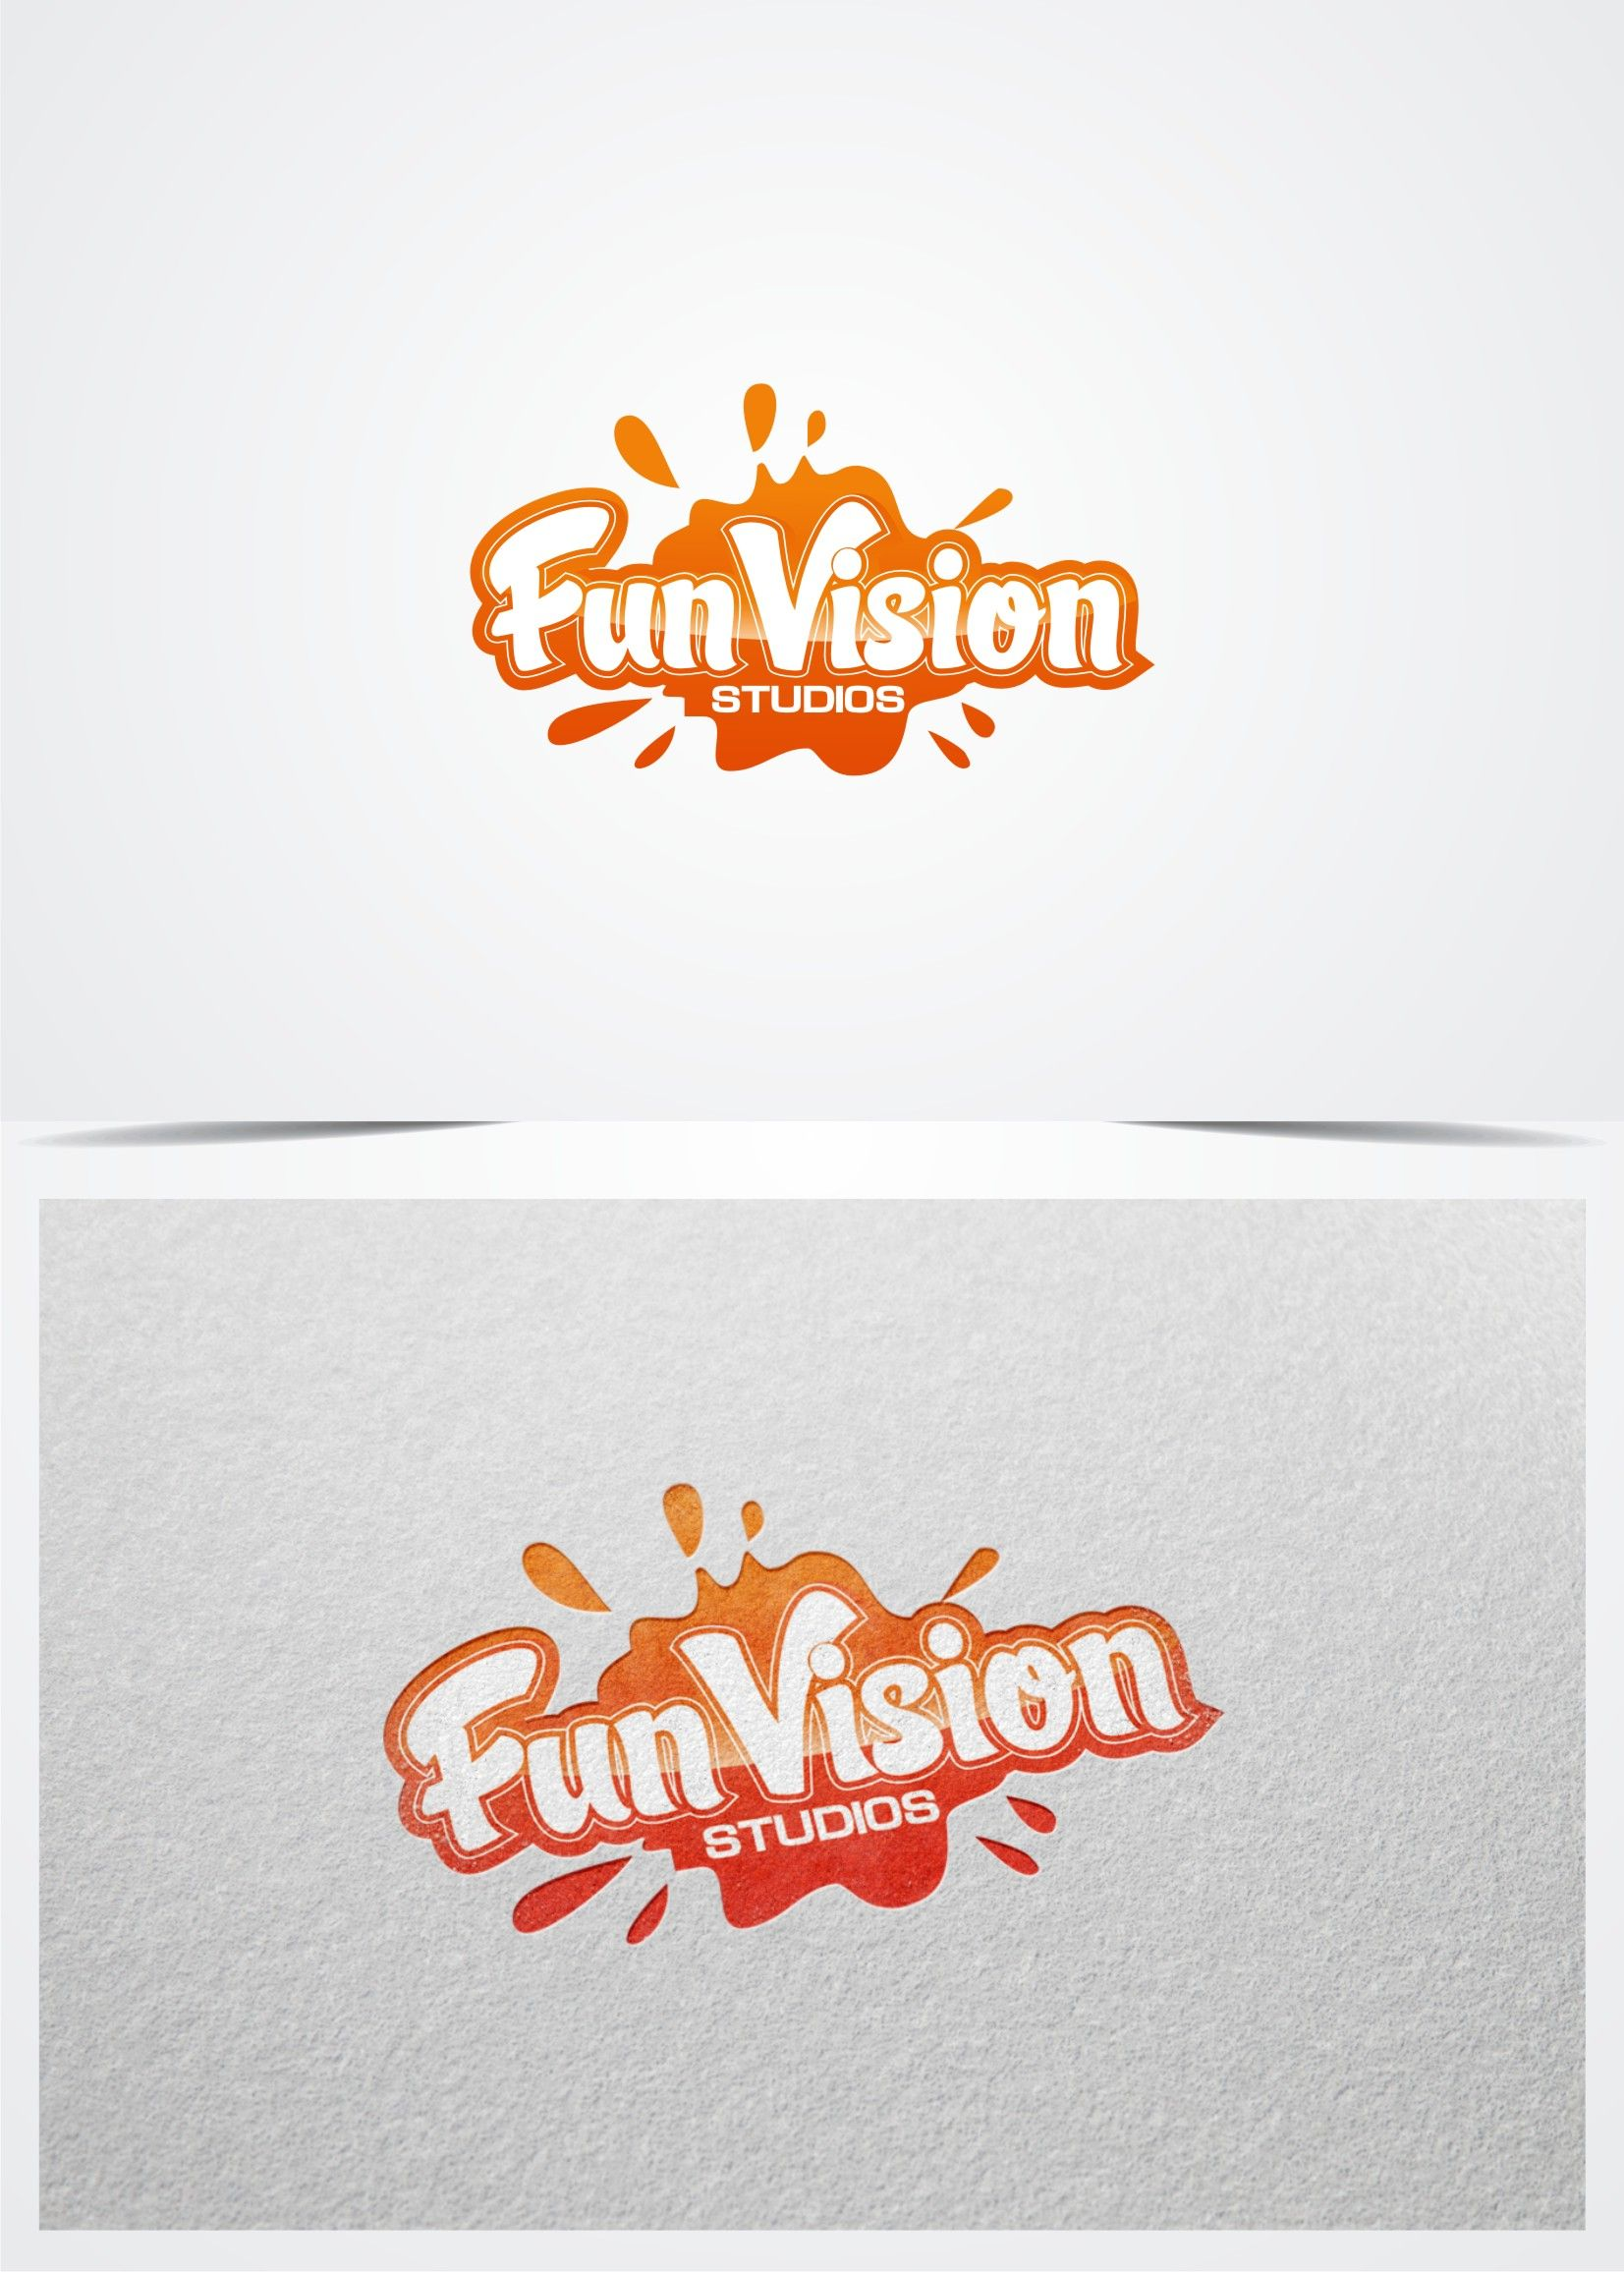 New logo wanted for Fun Vision Studios a small indie